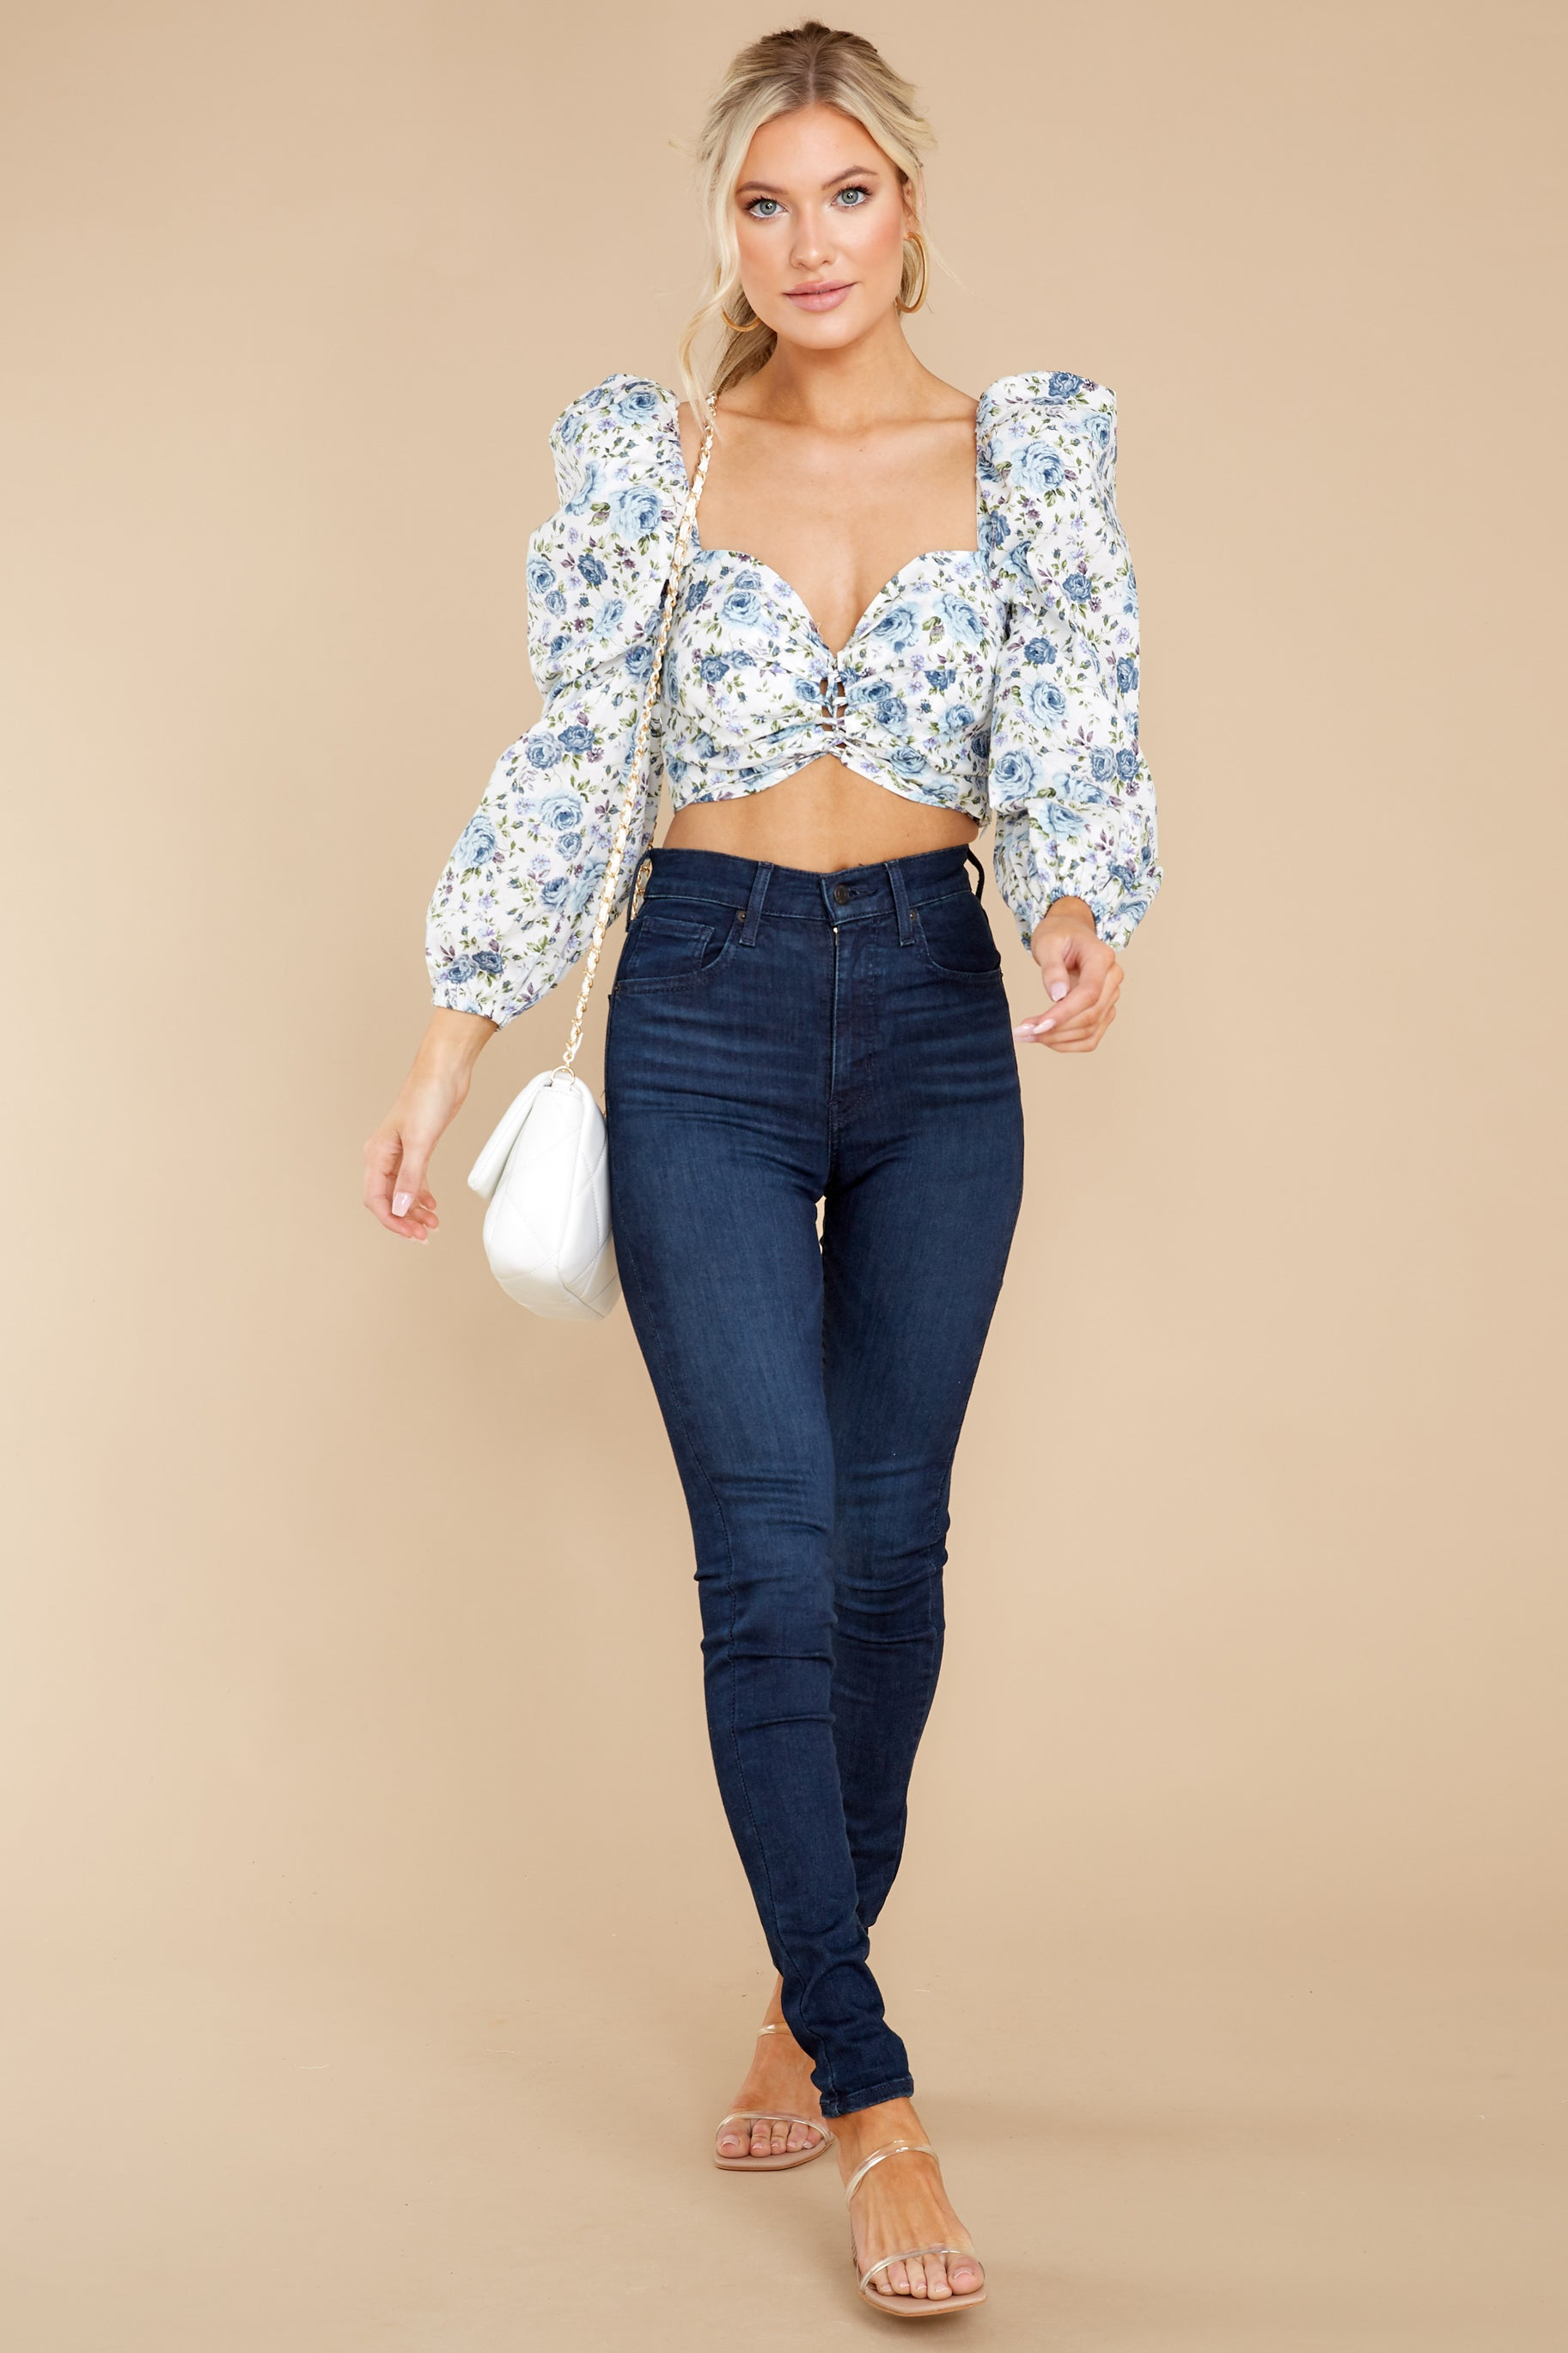 3 Fields Of Love White And Blue Floral Print Crop Top at reddress.com